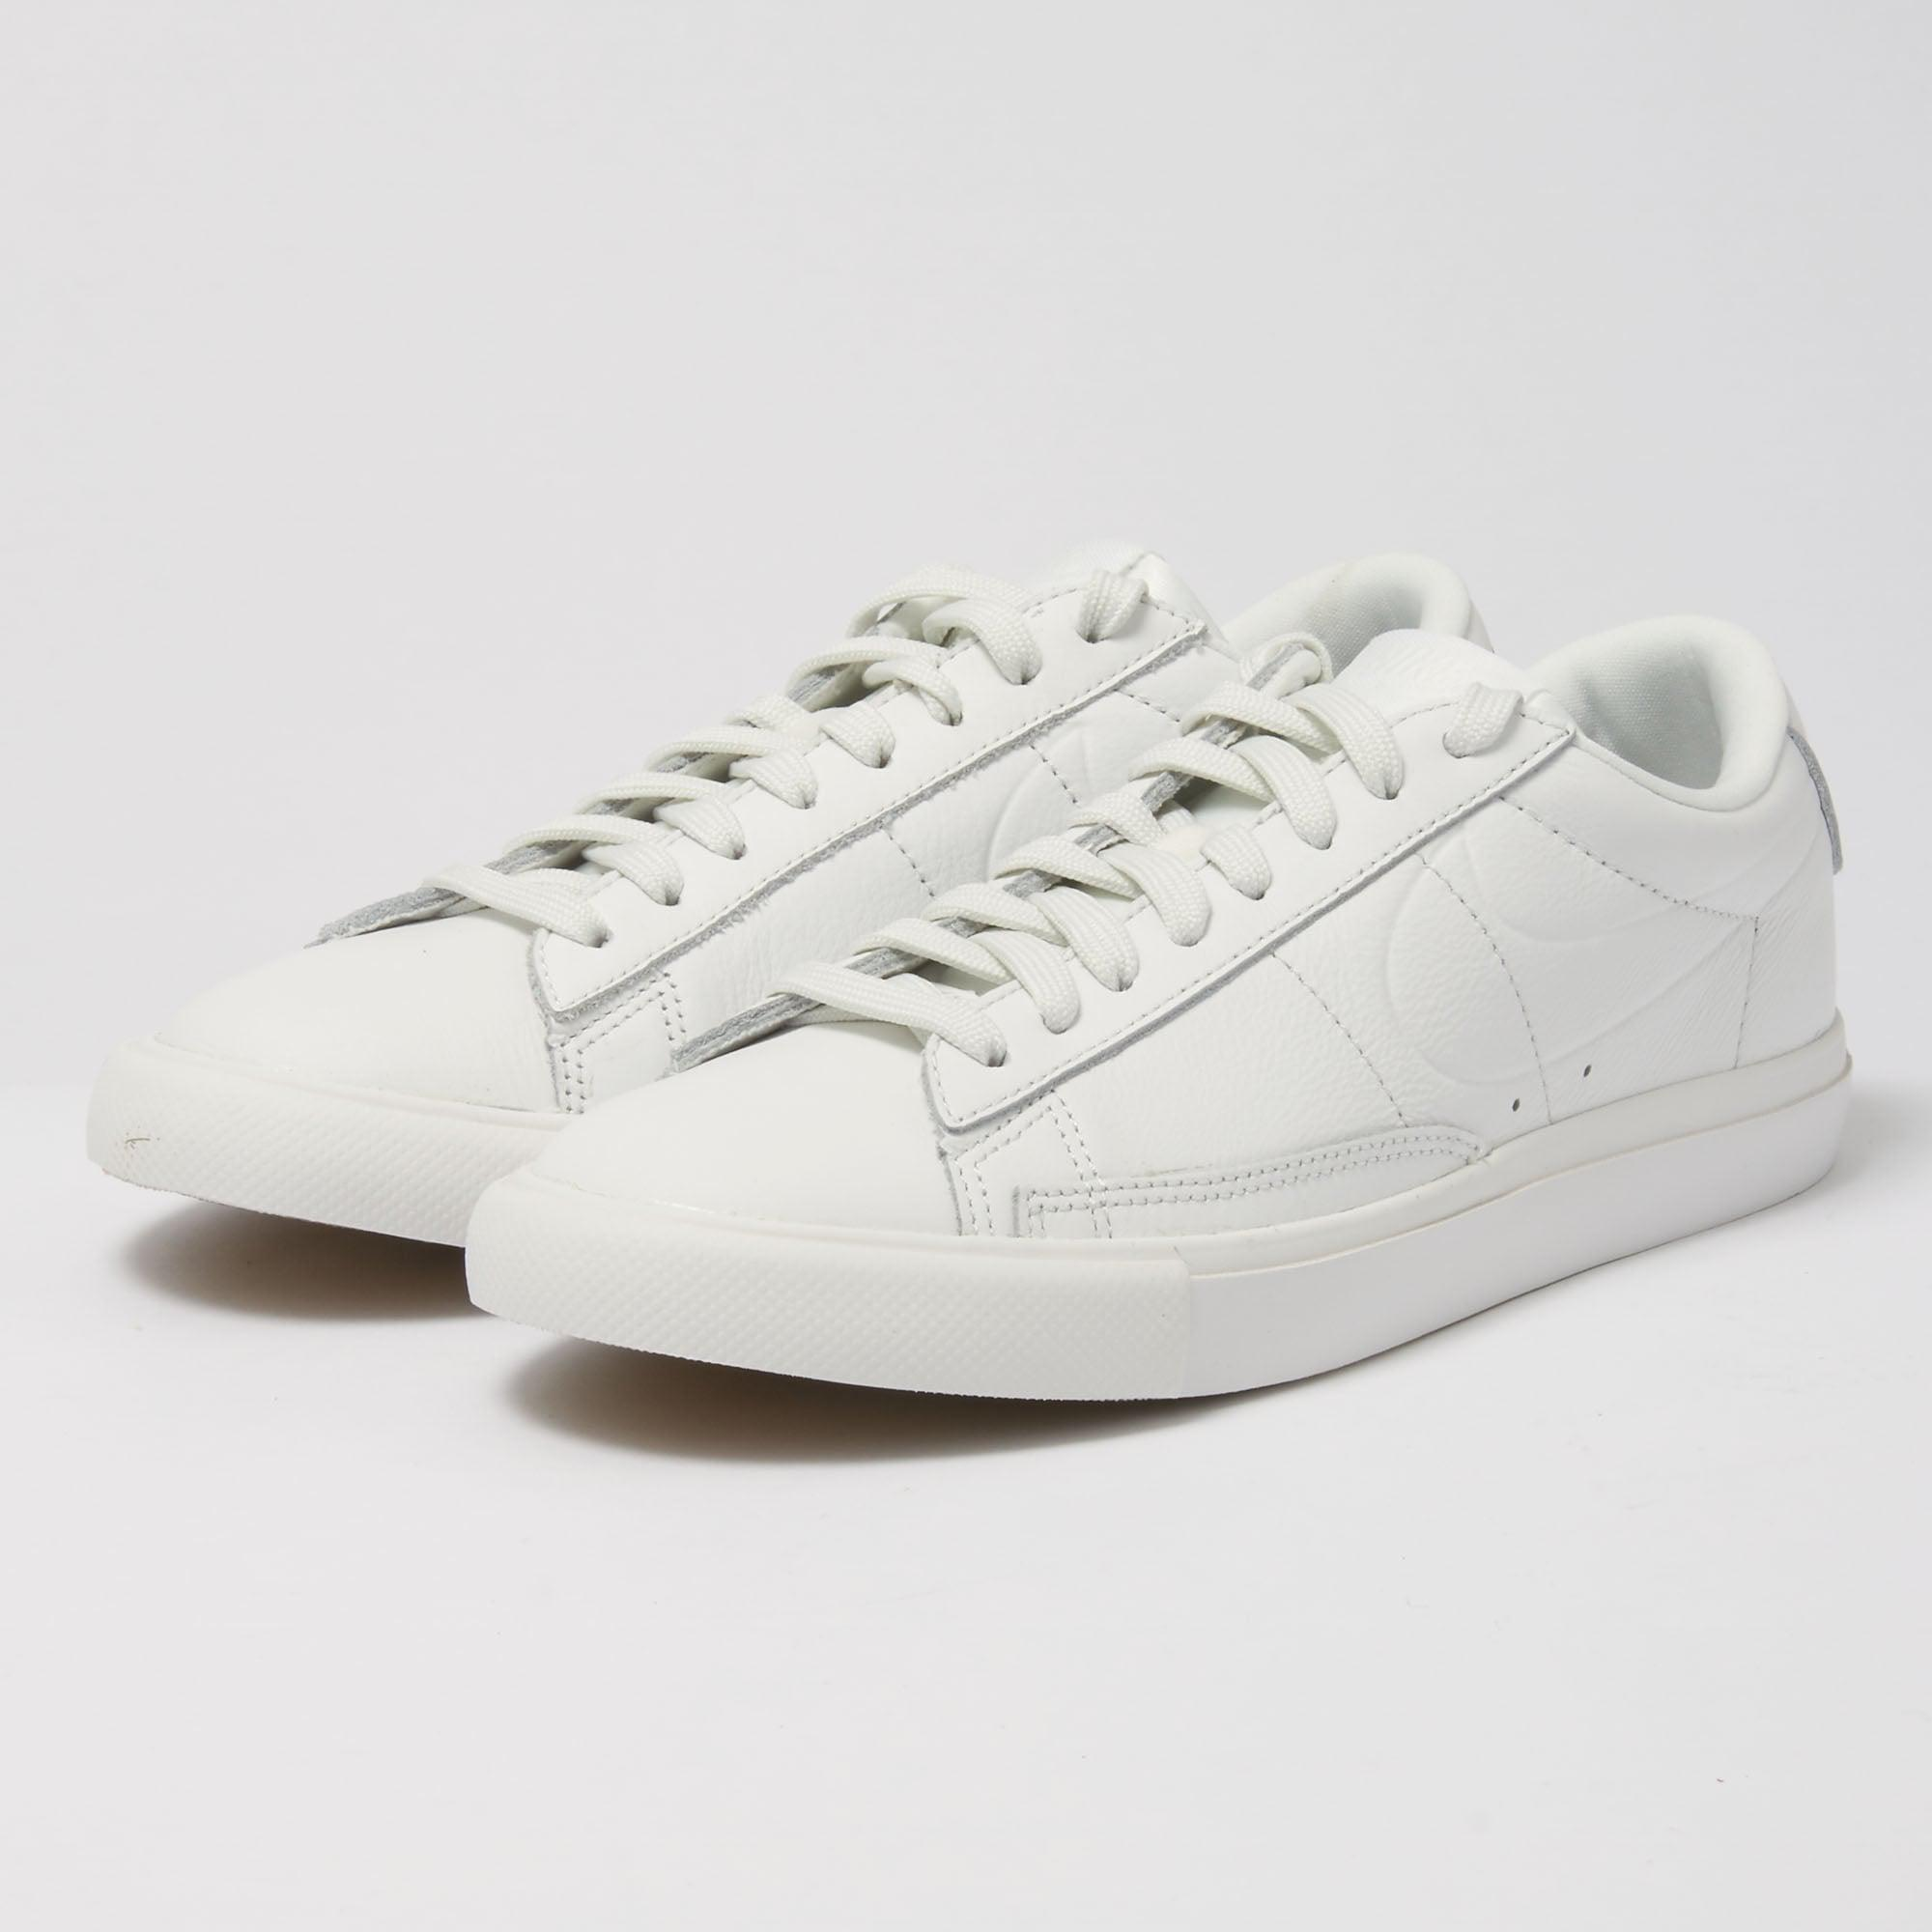 new arrival 94db6 d6f01 Nike White Blazer Low Fitness Shoes for men